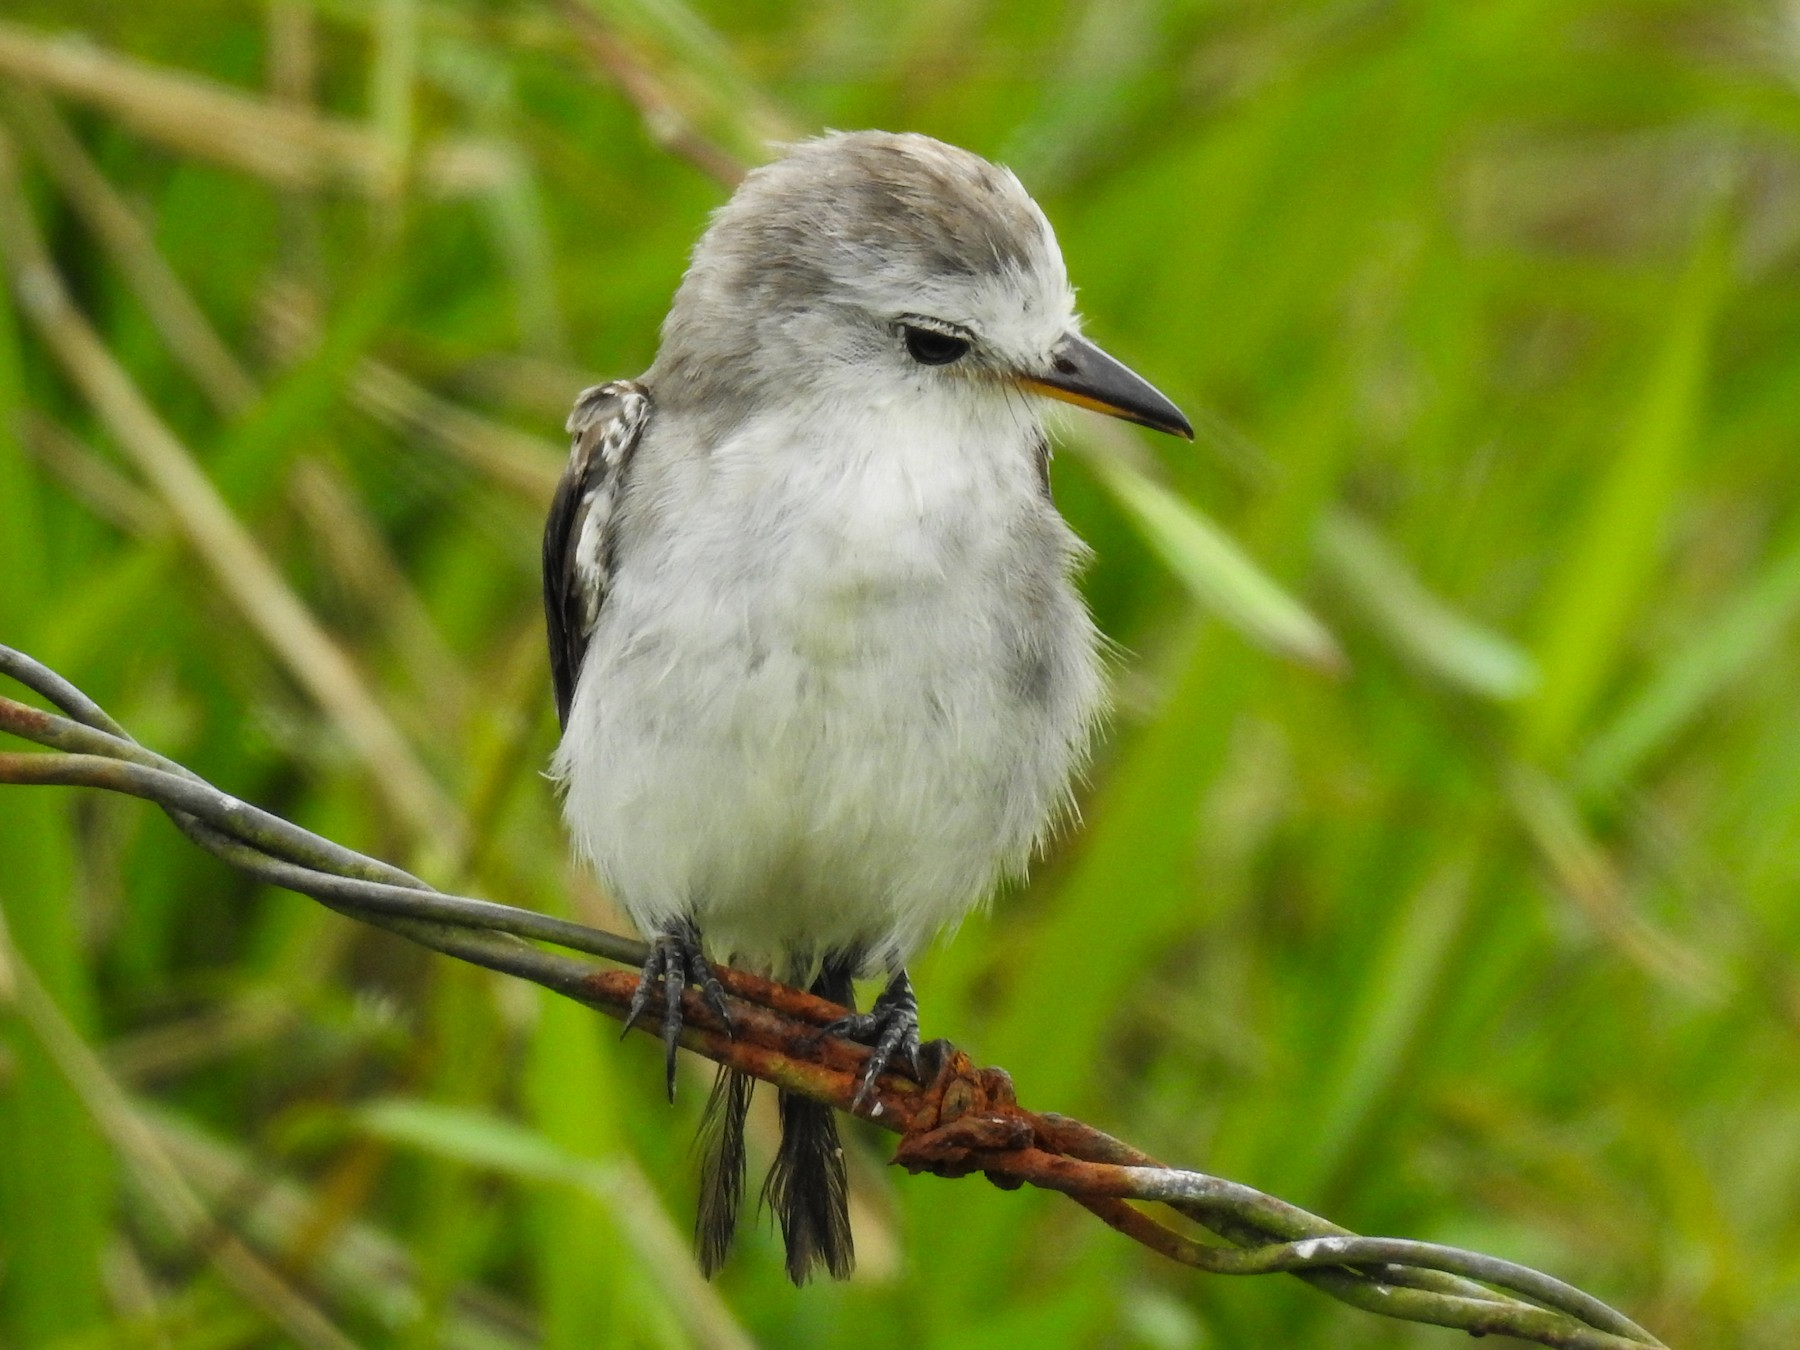 White-headed Marsh Tyrant - Pam Rasmussen